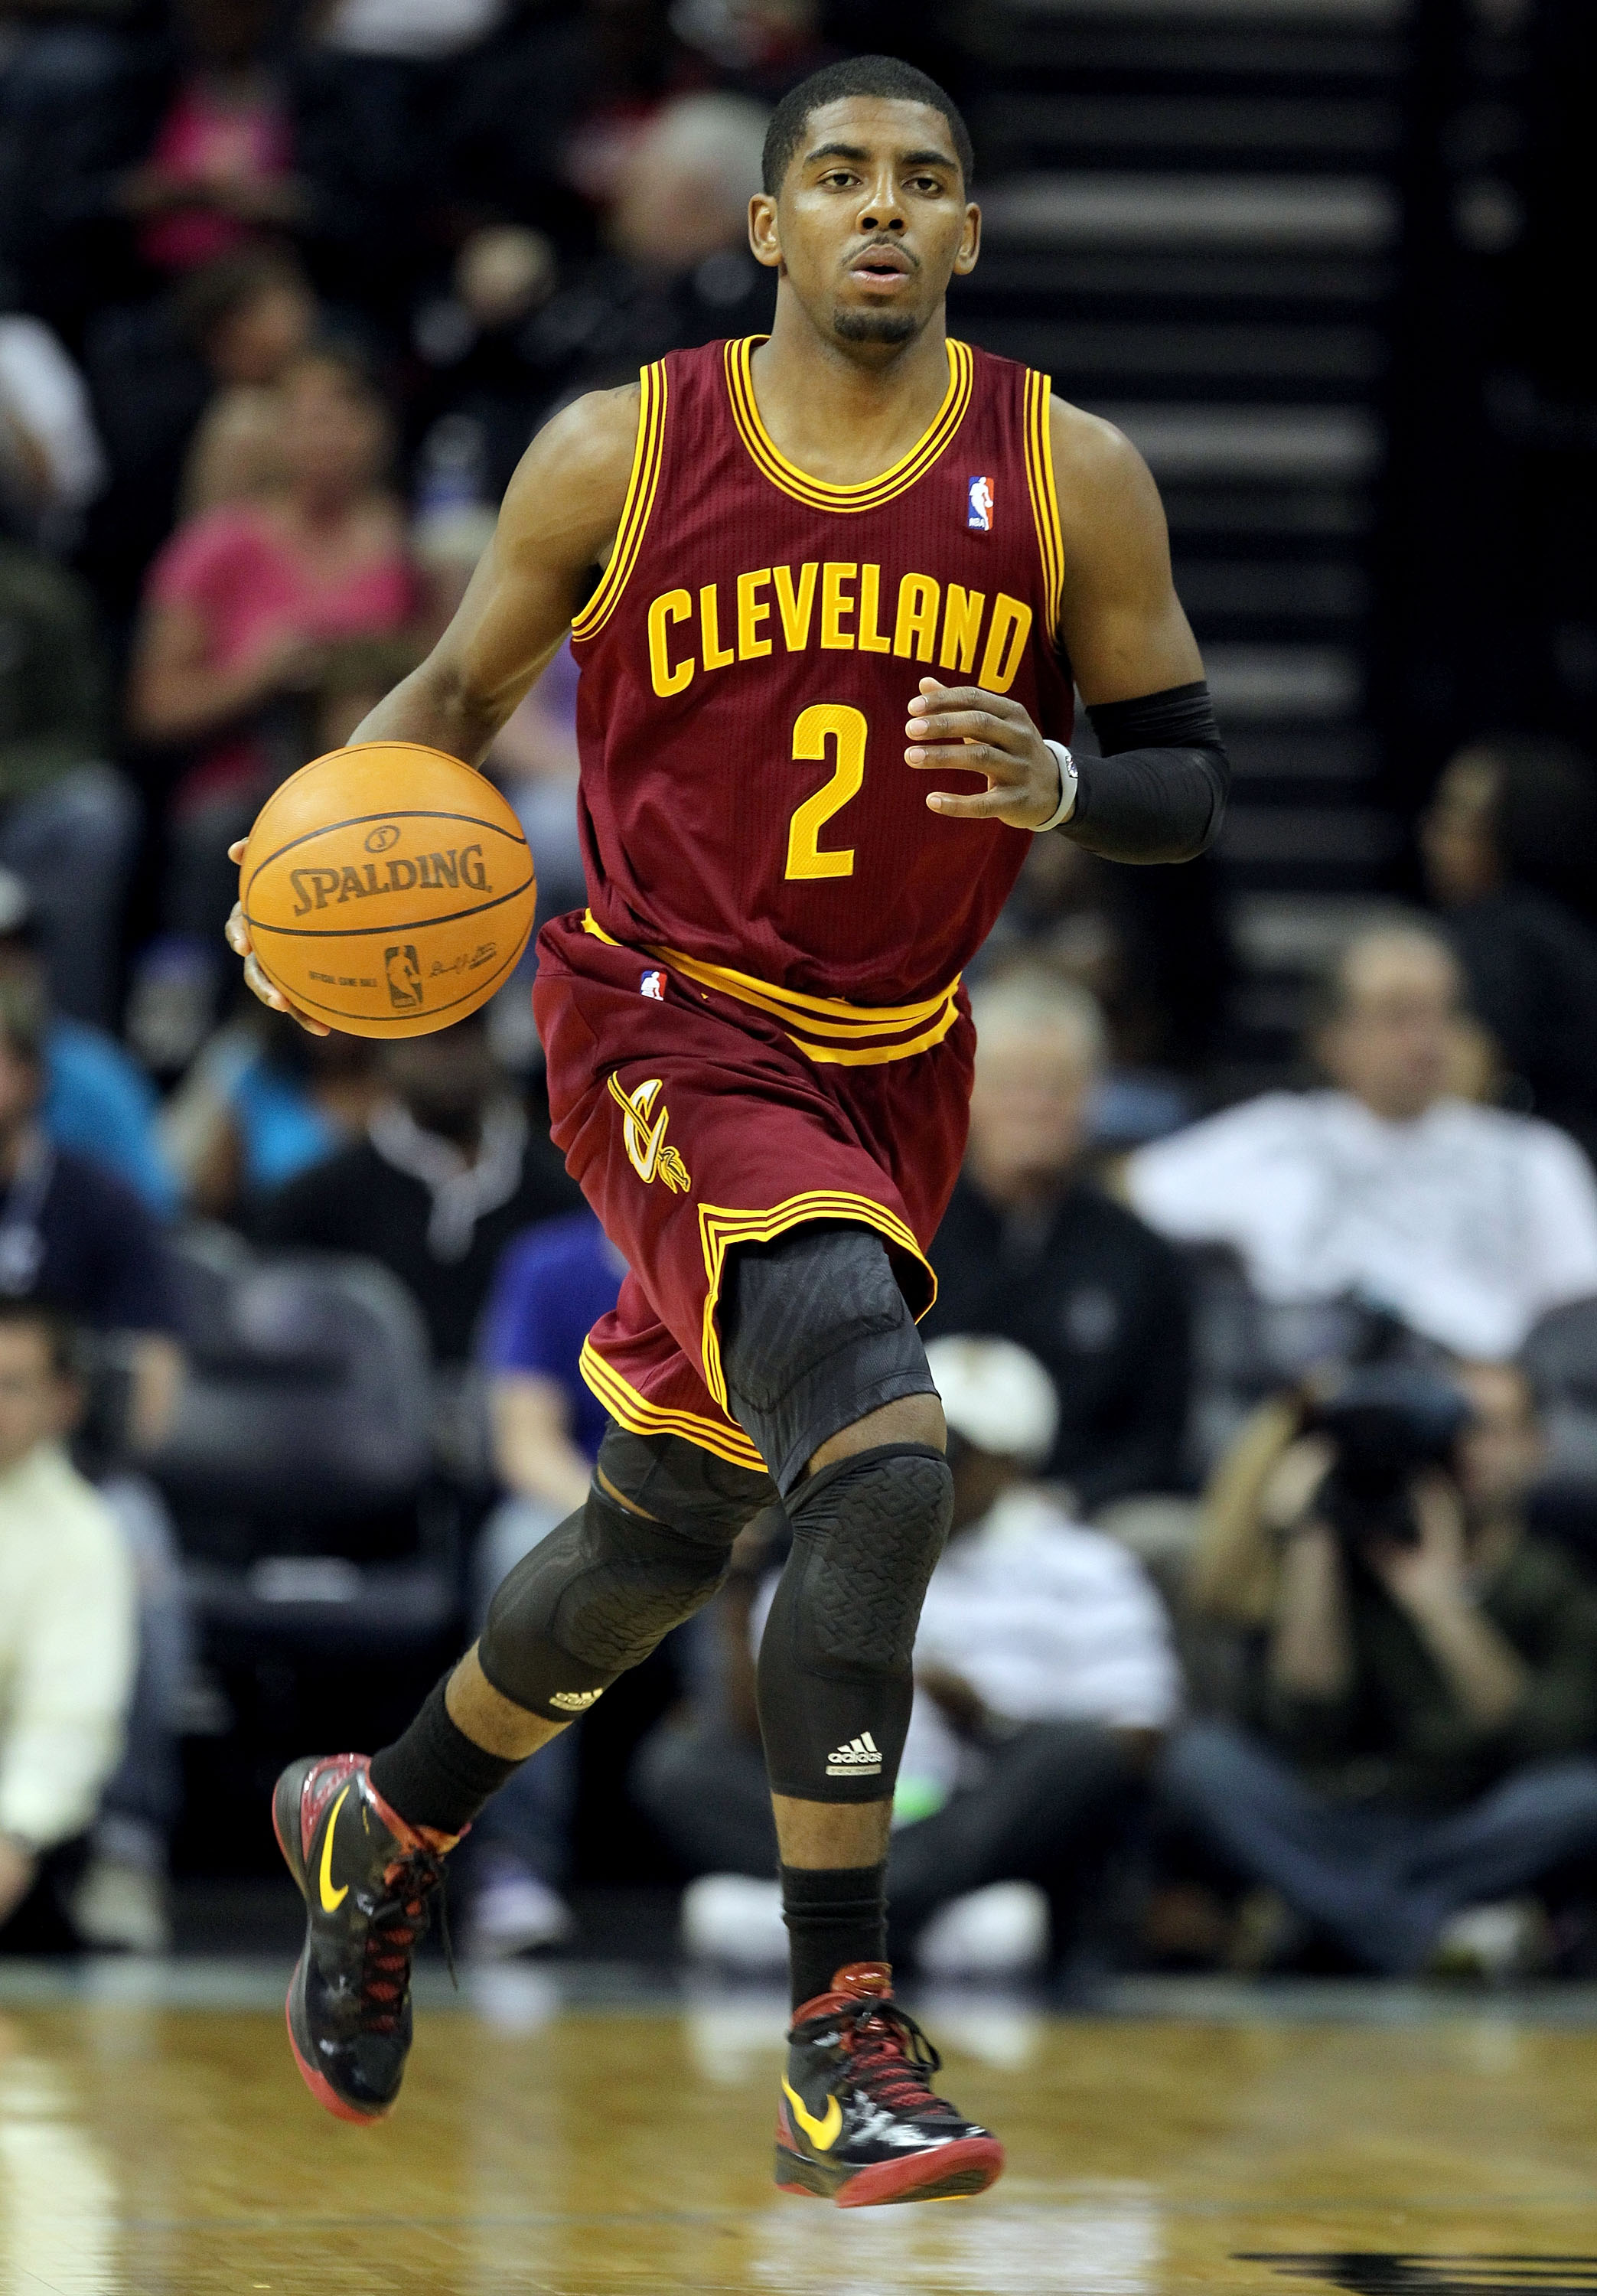 Cavs point guard Kyrie Irving won last season's Rookie of the Year award. (Getty Images)